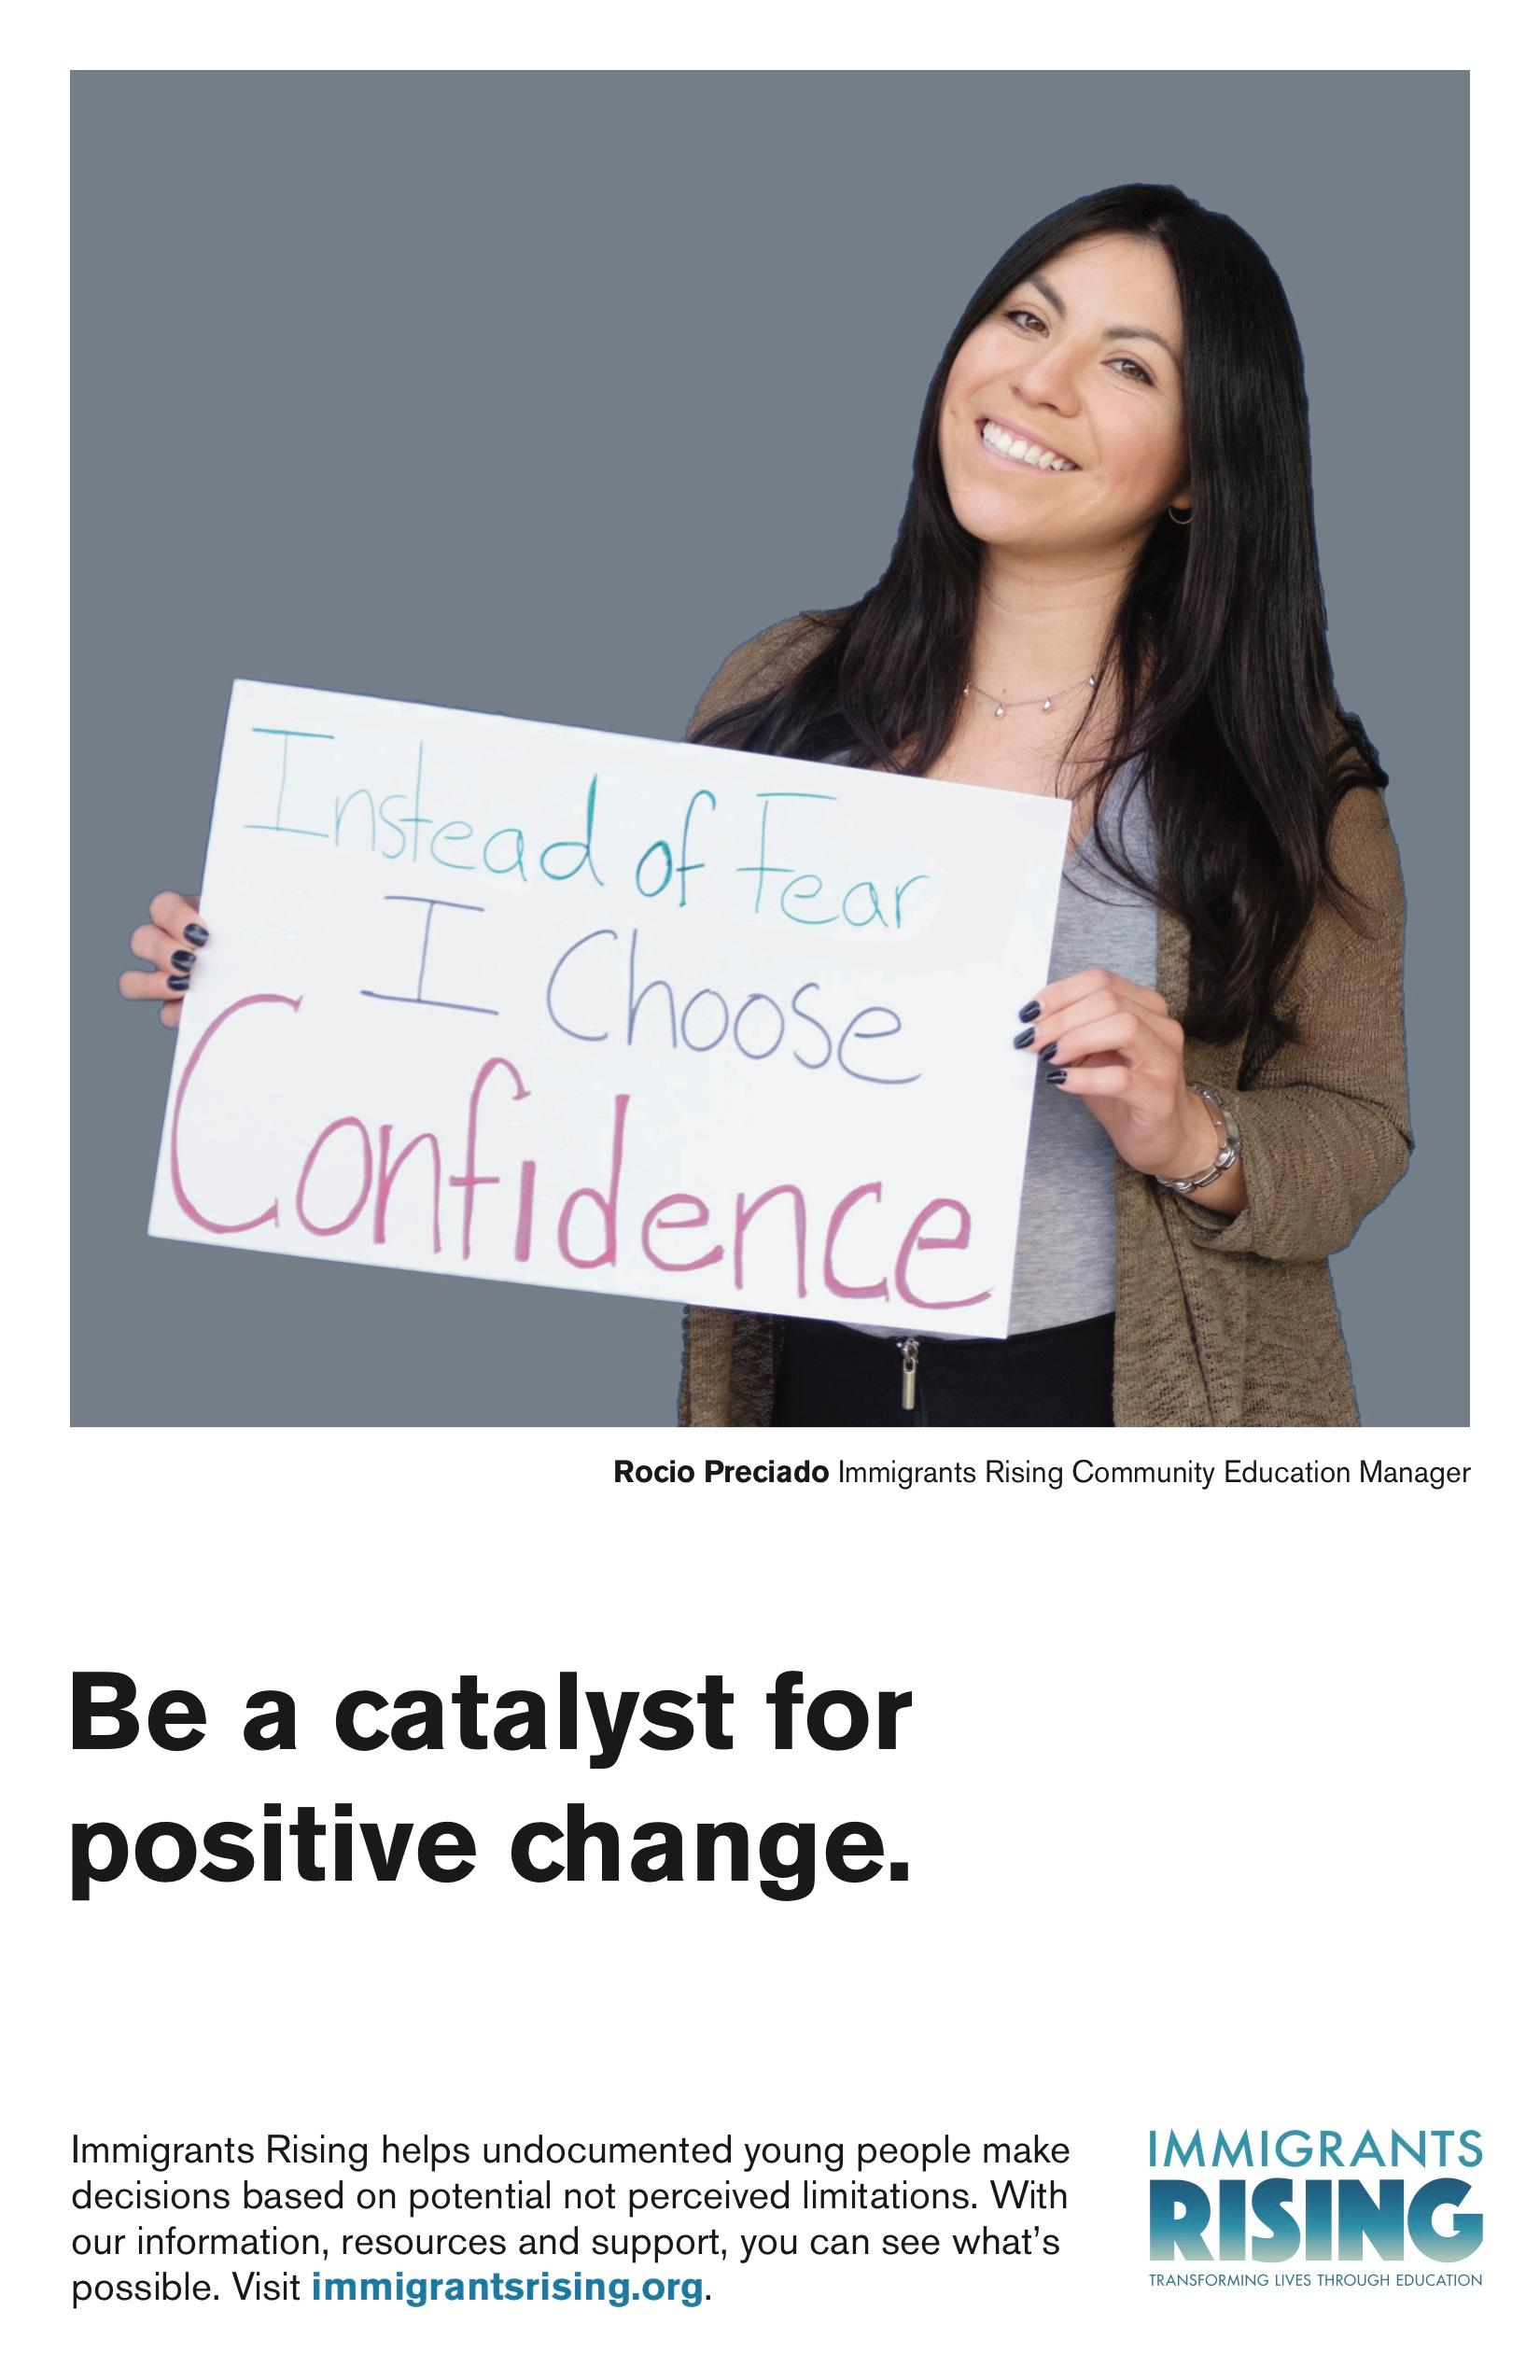 Be a catalyst for positive change